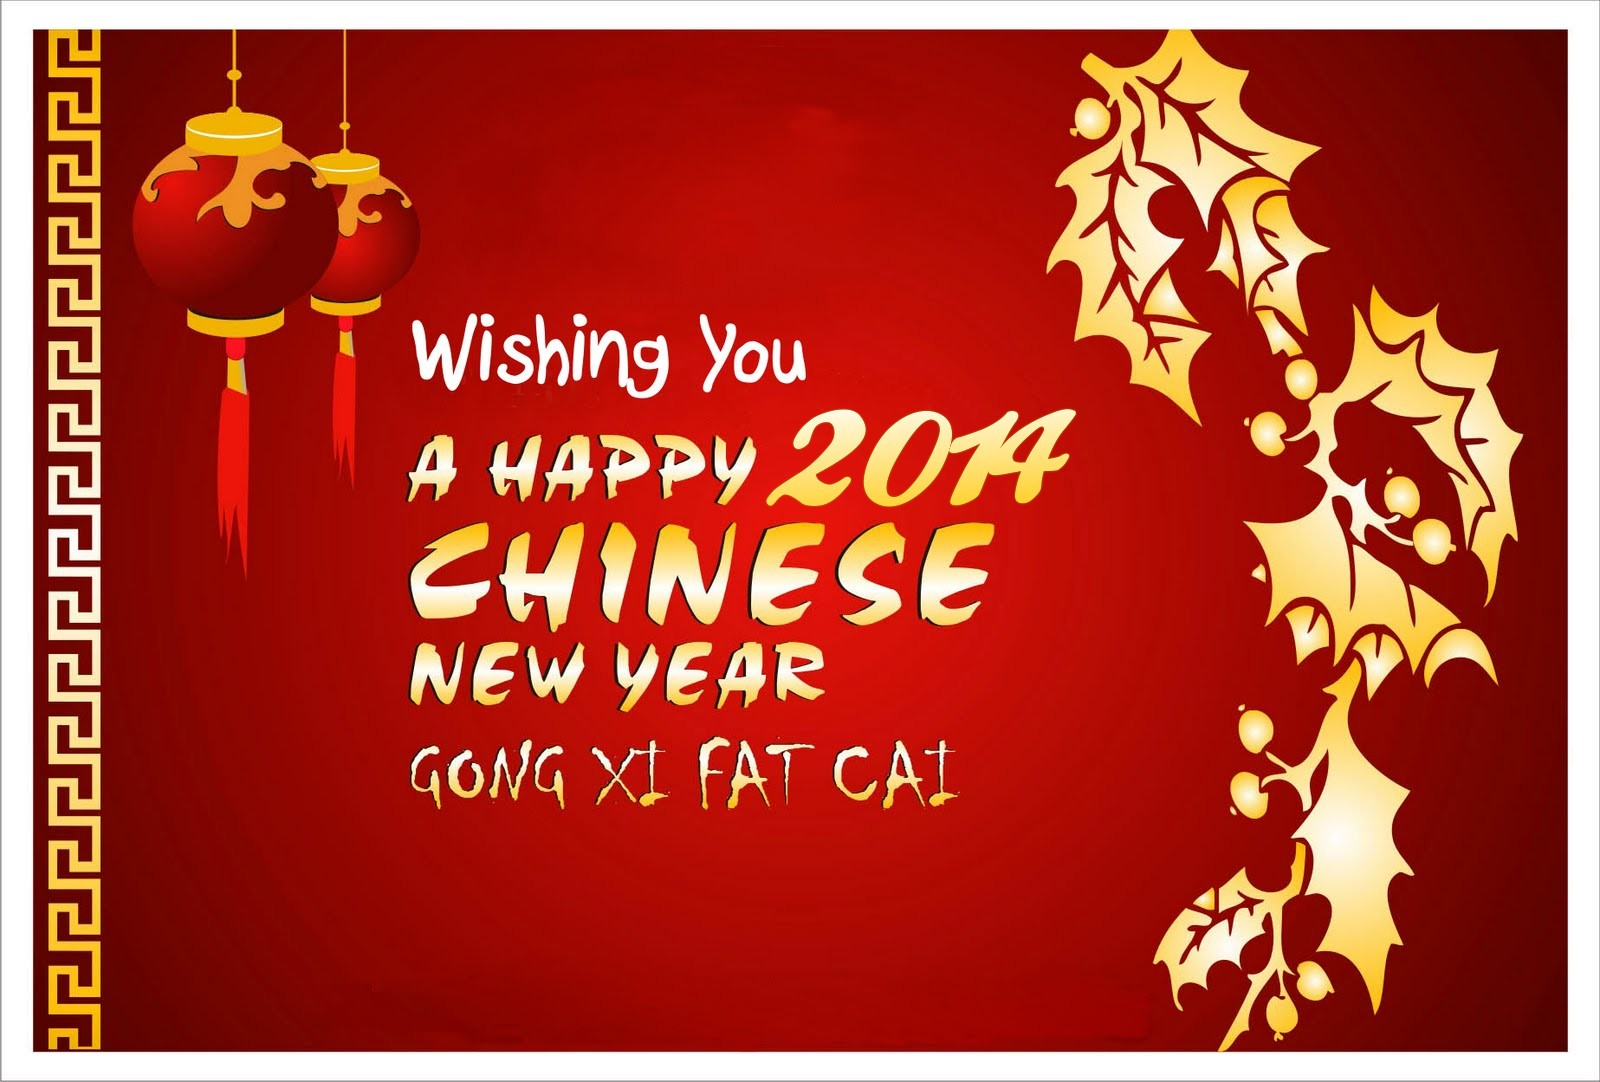 Chinese-New-Year-2014-Horse-Wishes-HD.jpg